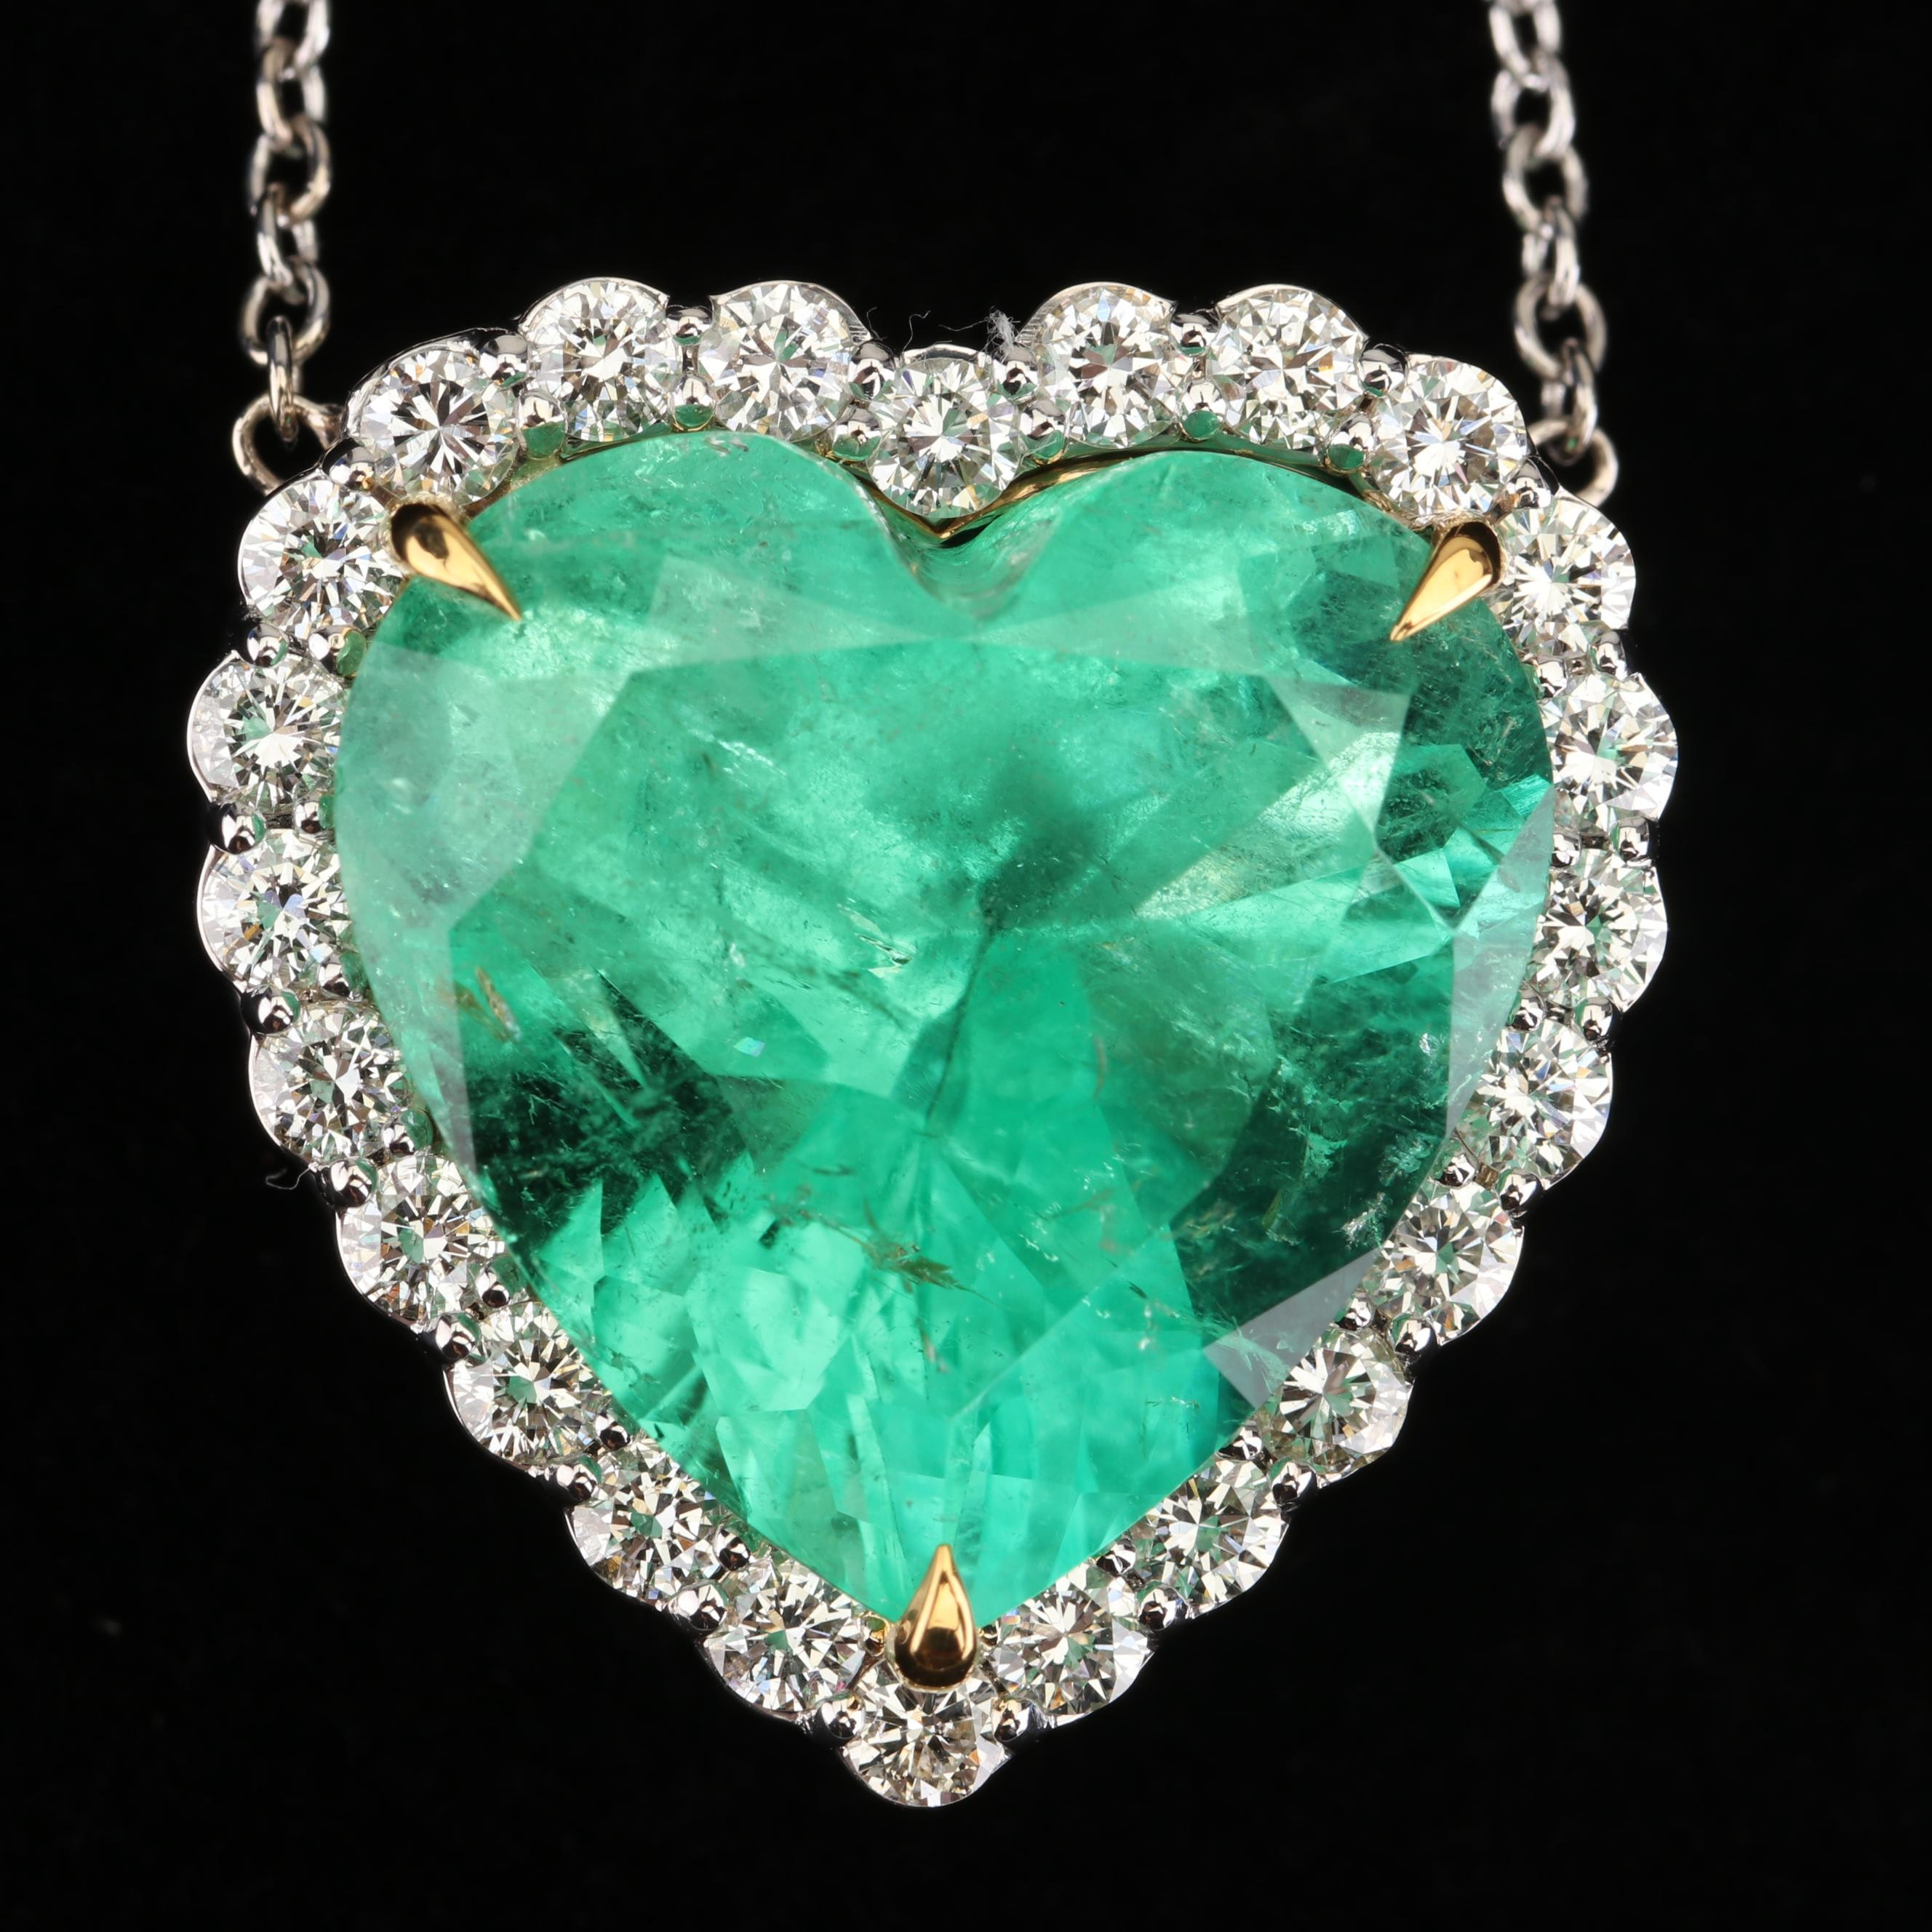 18K Gold 17.78 CT Colombian Emerald and 1.40 CTW Diamond Necklace with GIA